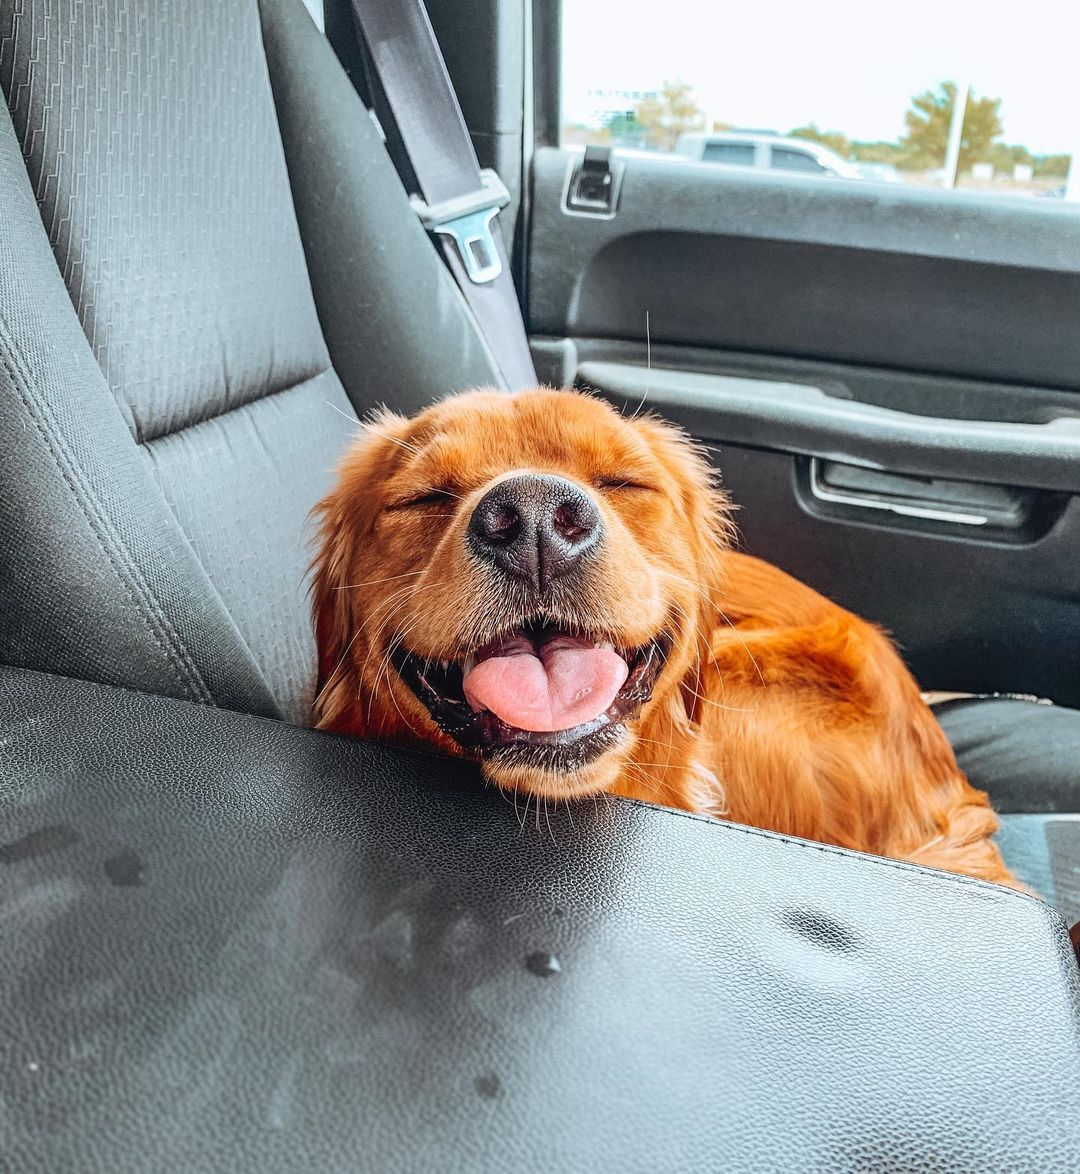 Dog in the backseat of a car in the Culver's drive-thru